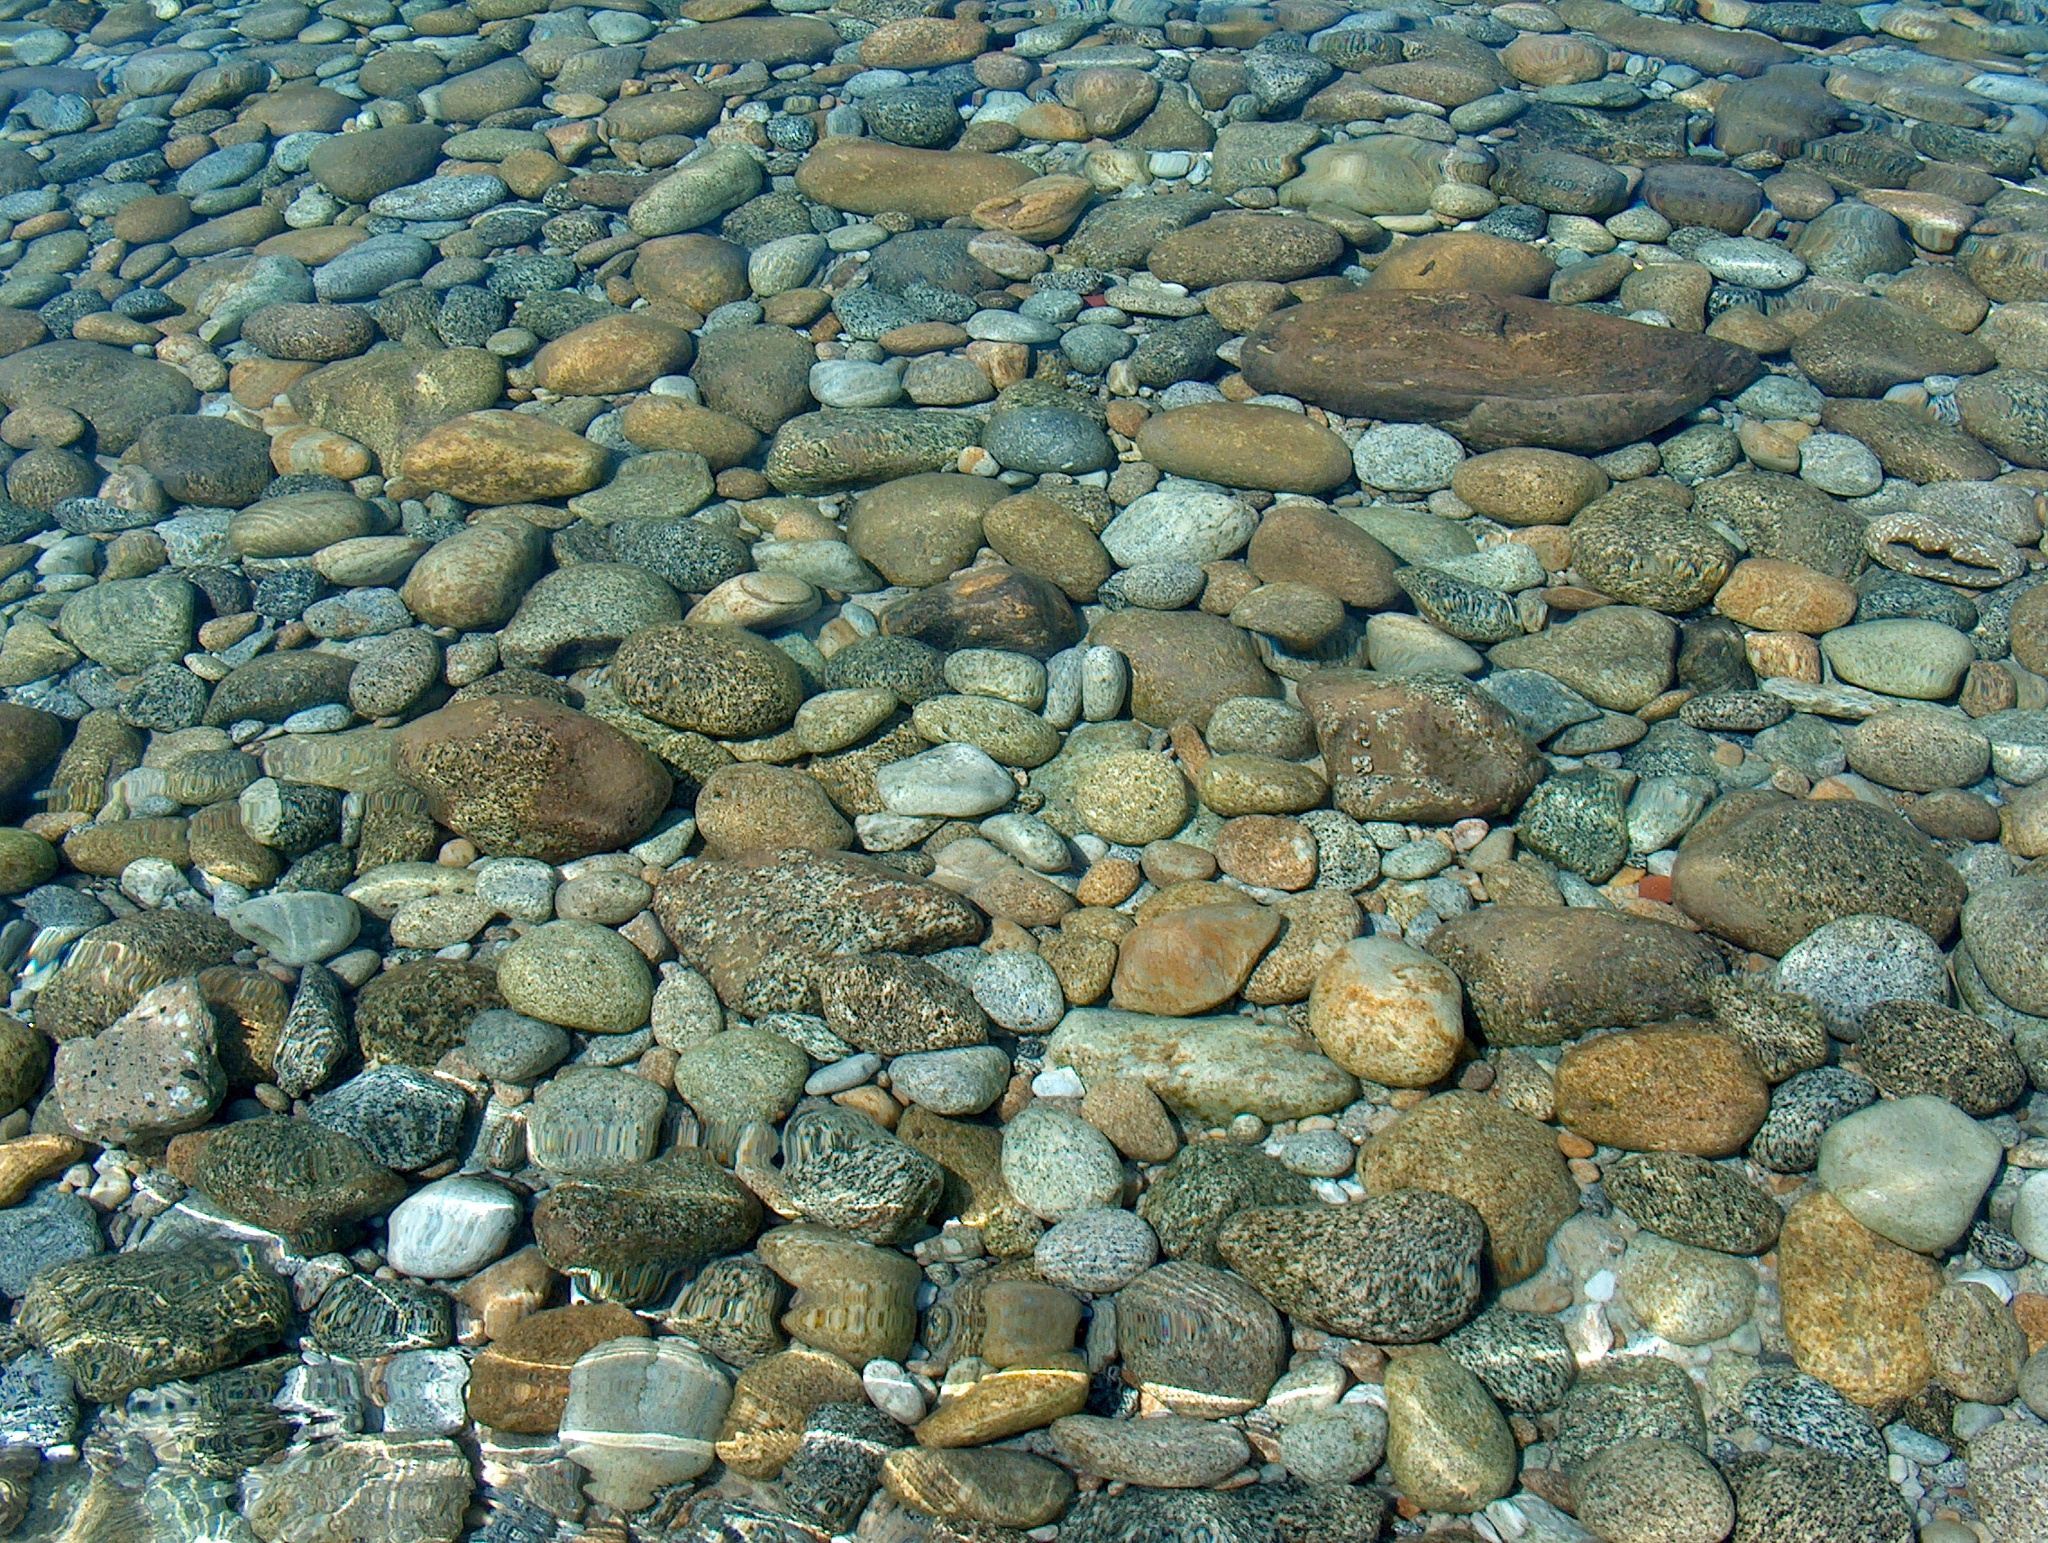 crystal water and a carpet of peebles by Carlo Orsettigh